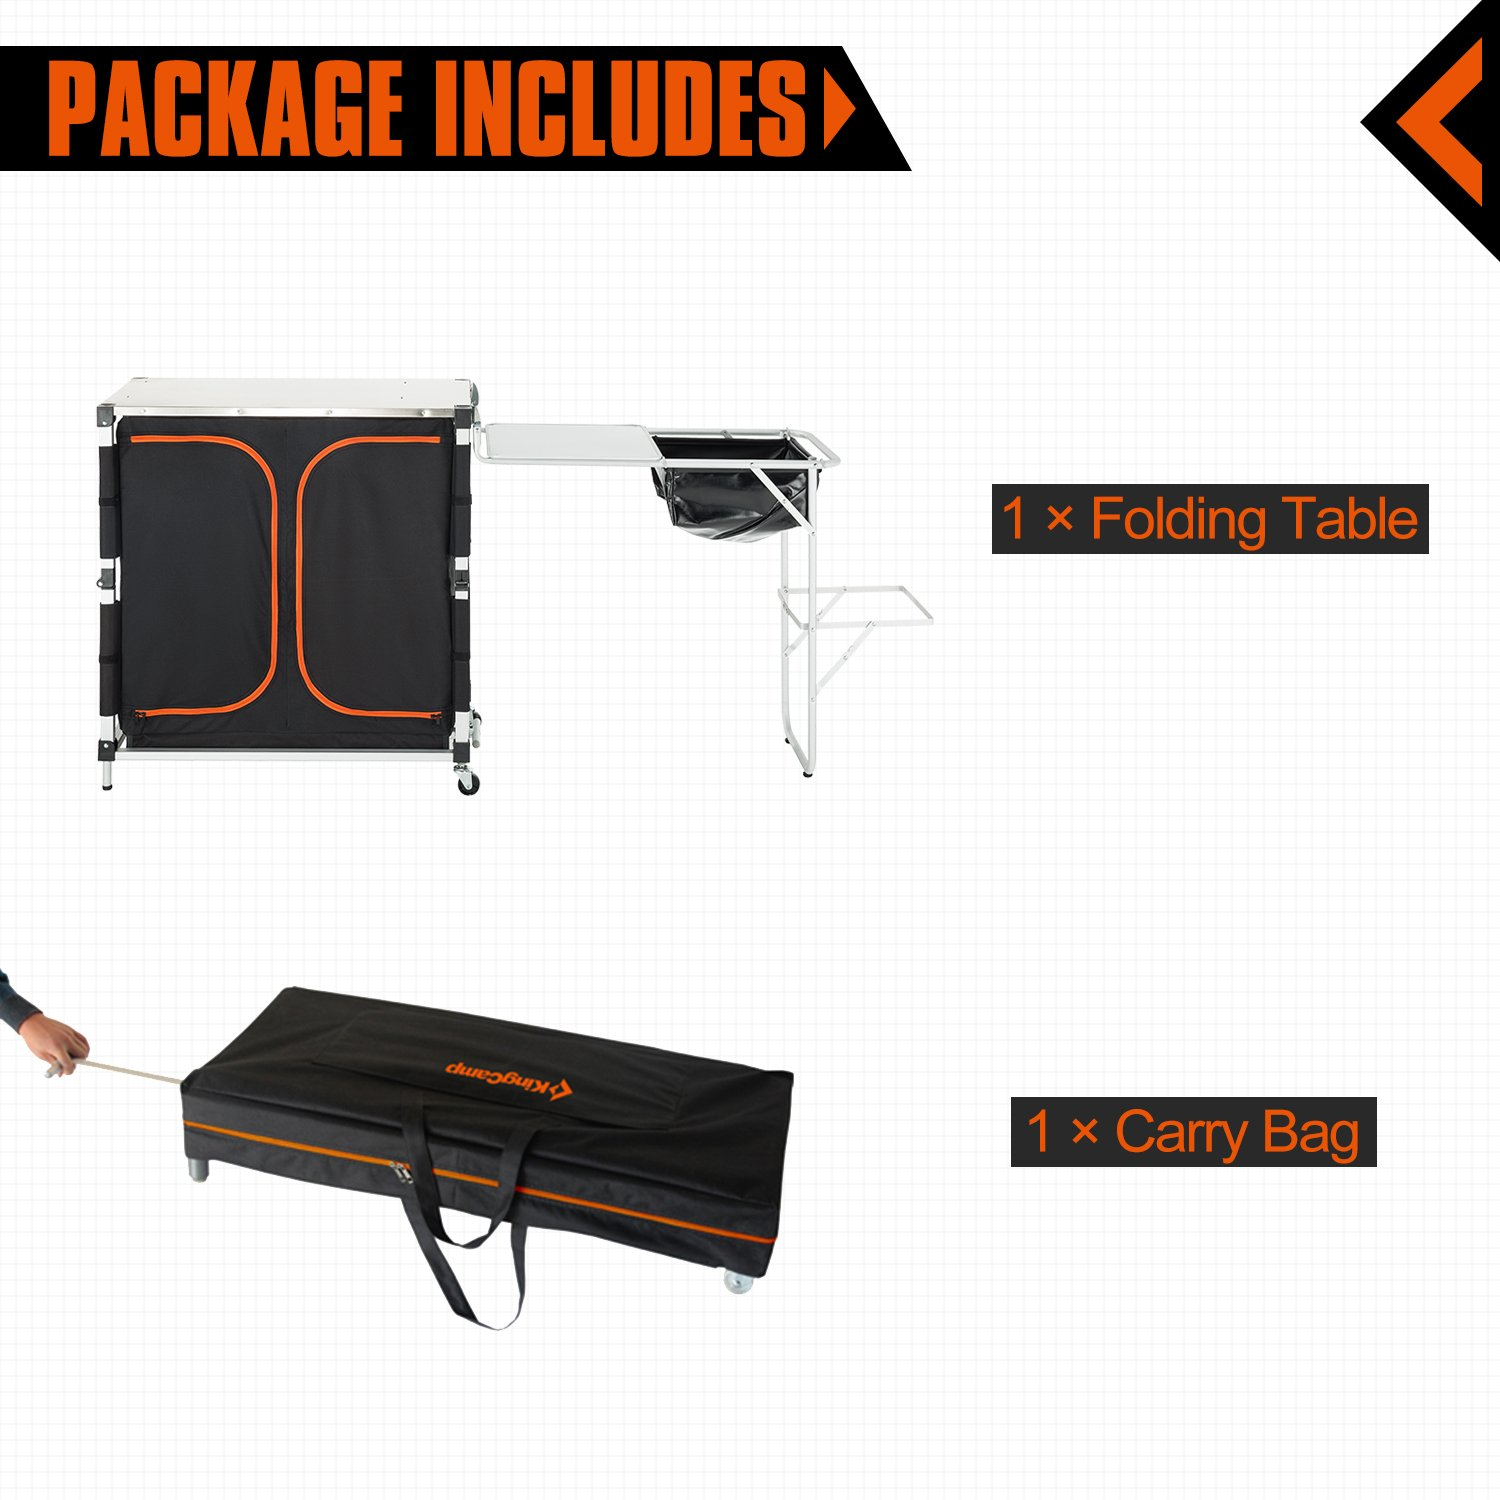 KingCamp Portable Light Multifunctional Camping Kitchen Cooking Table with Wheels Locker Sink by KingCamp (Image #6)